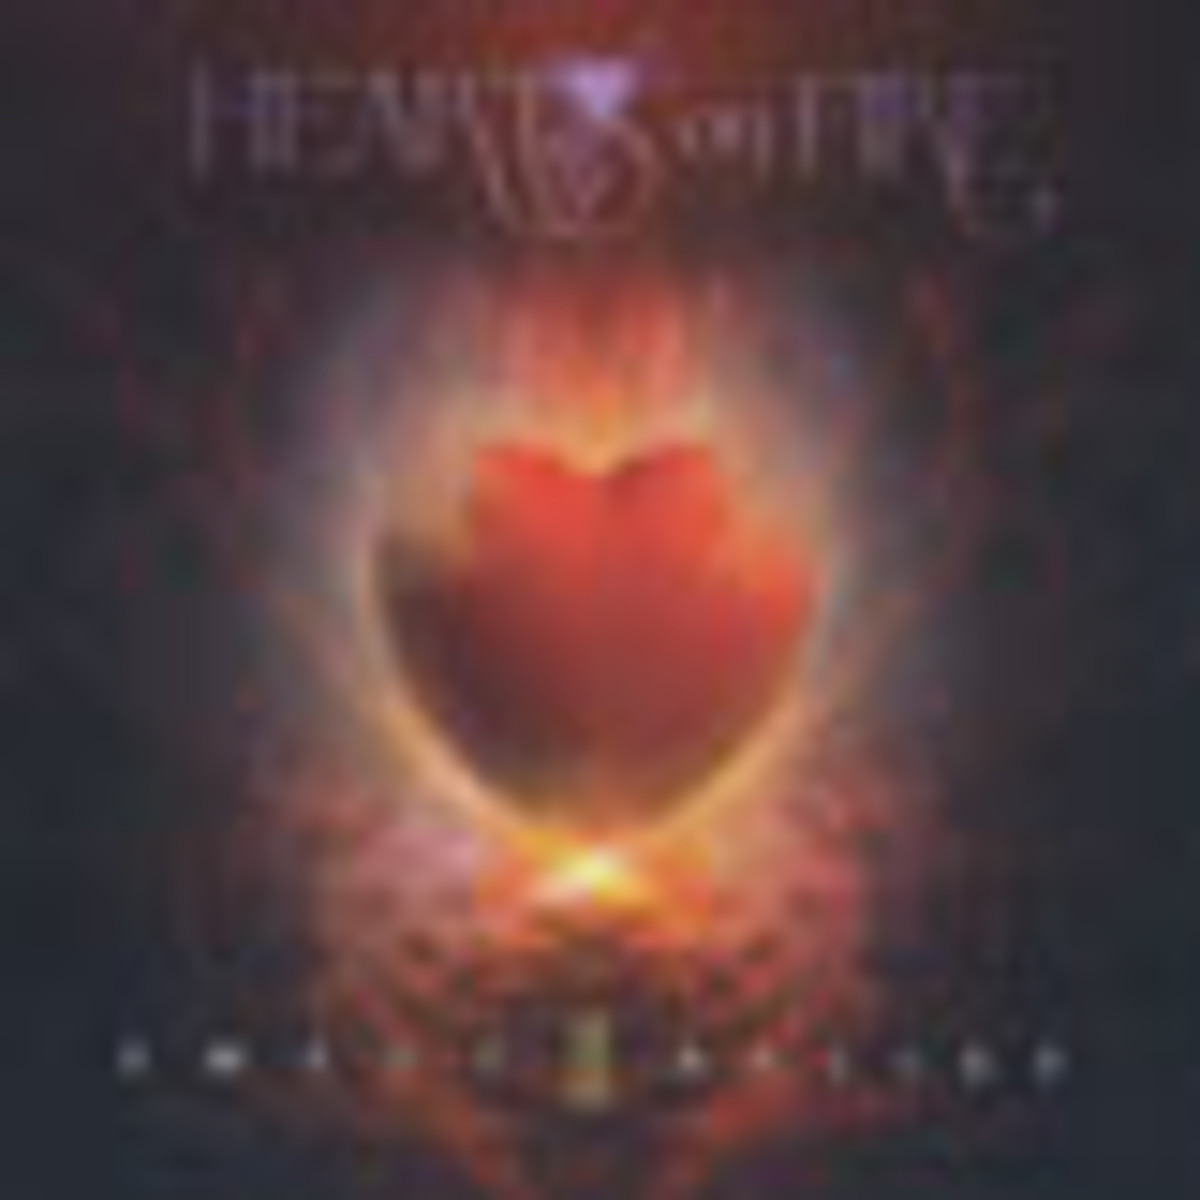 hearts_on_fire-1